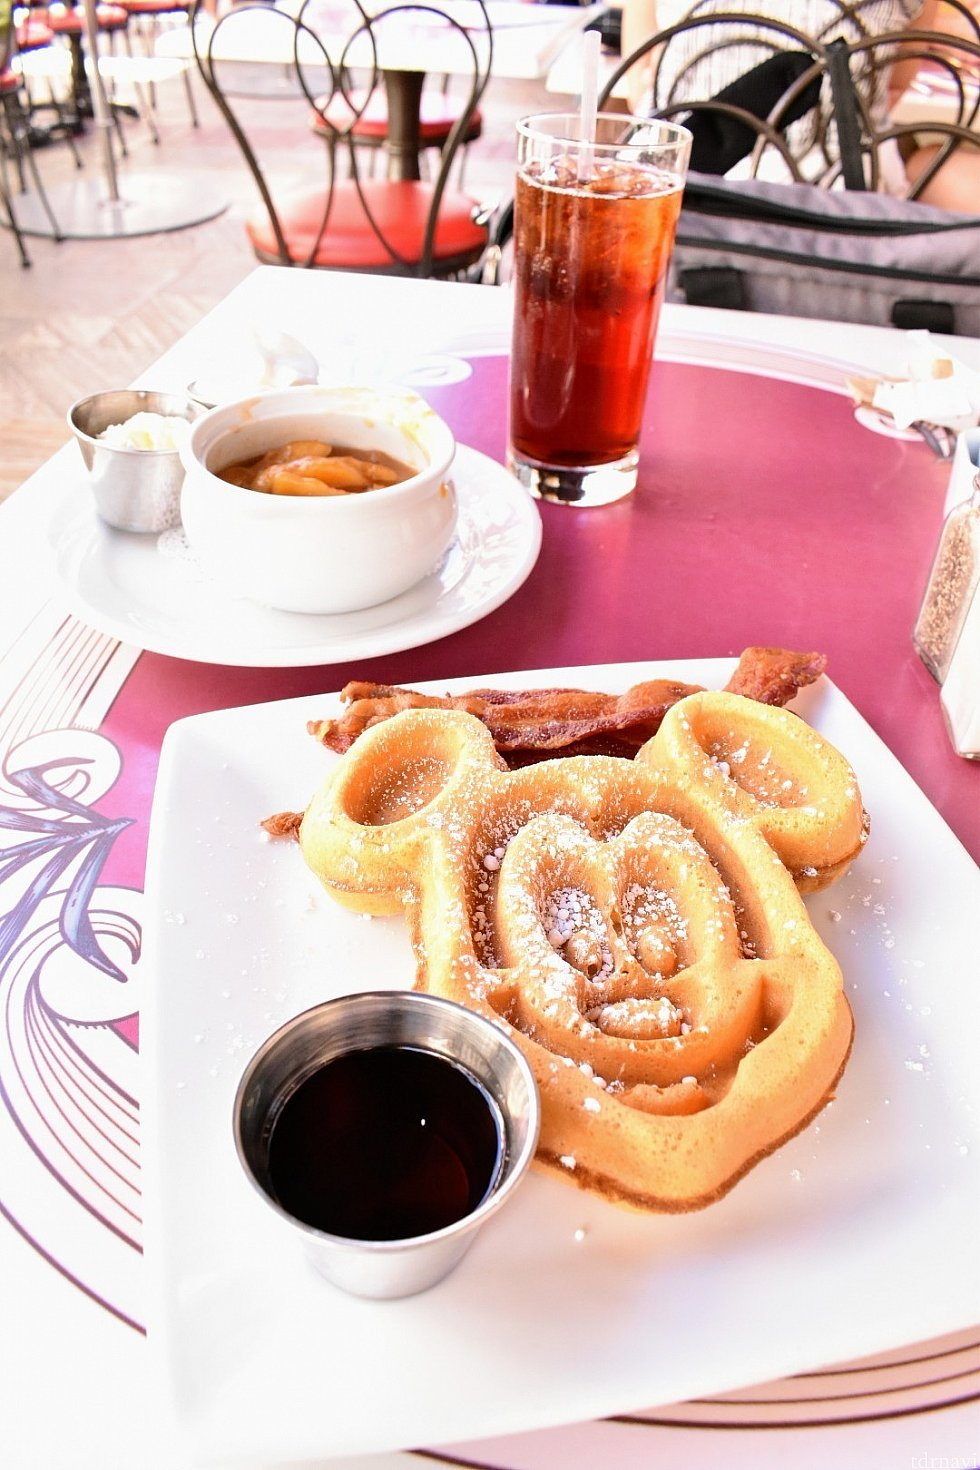 Mickey-shaped Waffle with Apple or Strawberry Topping $13.00